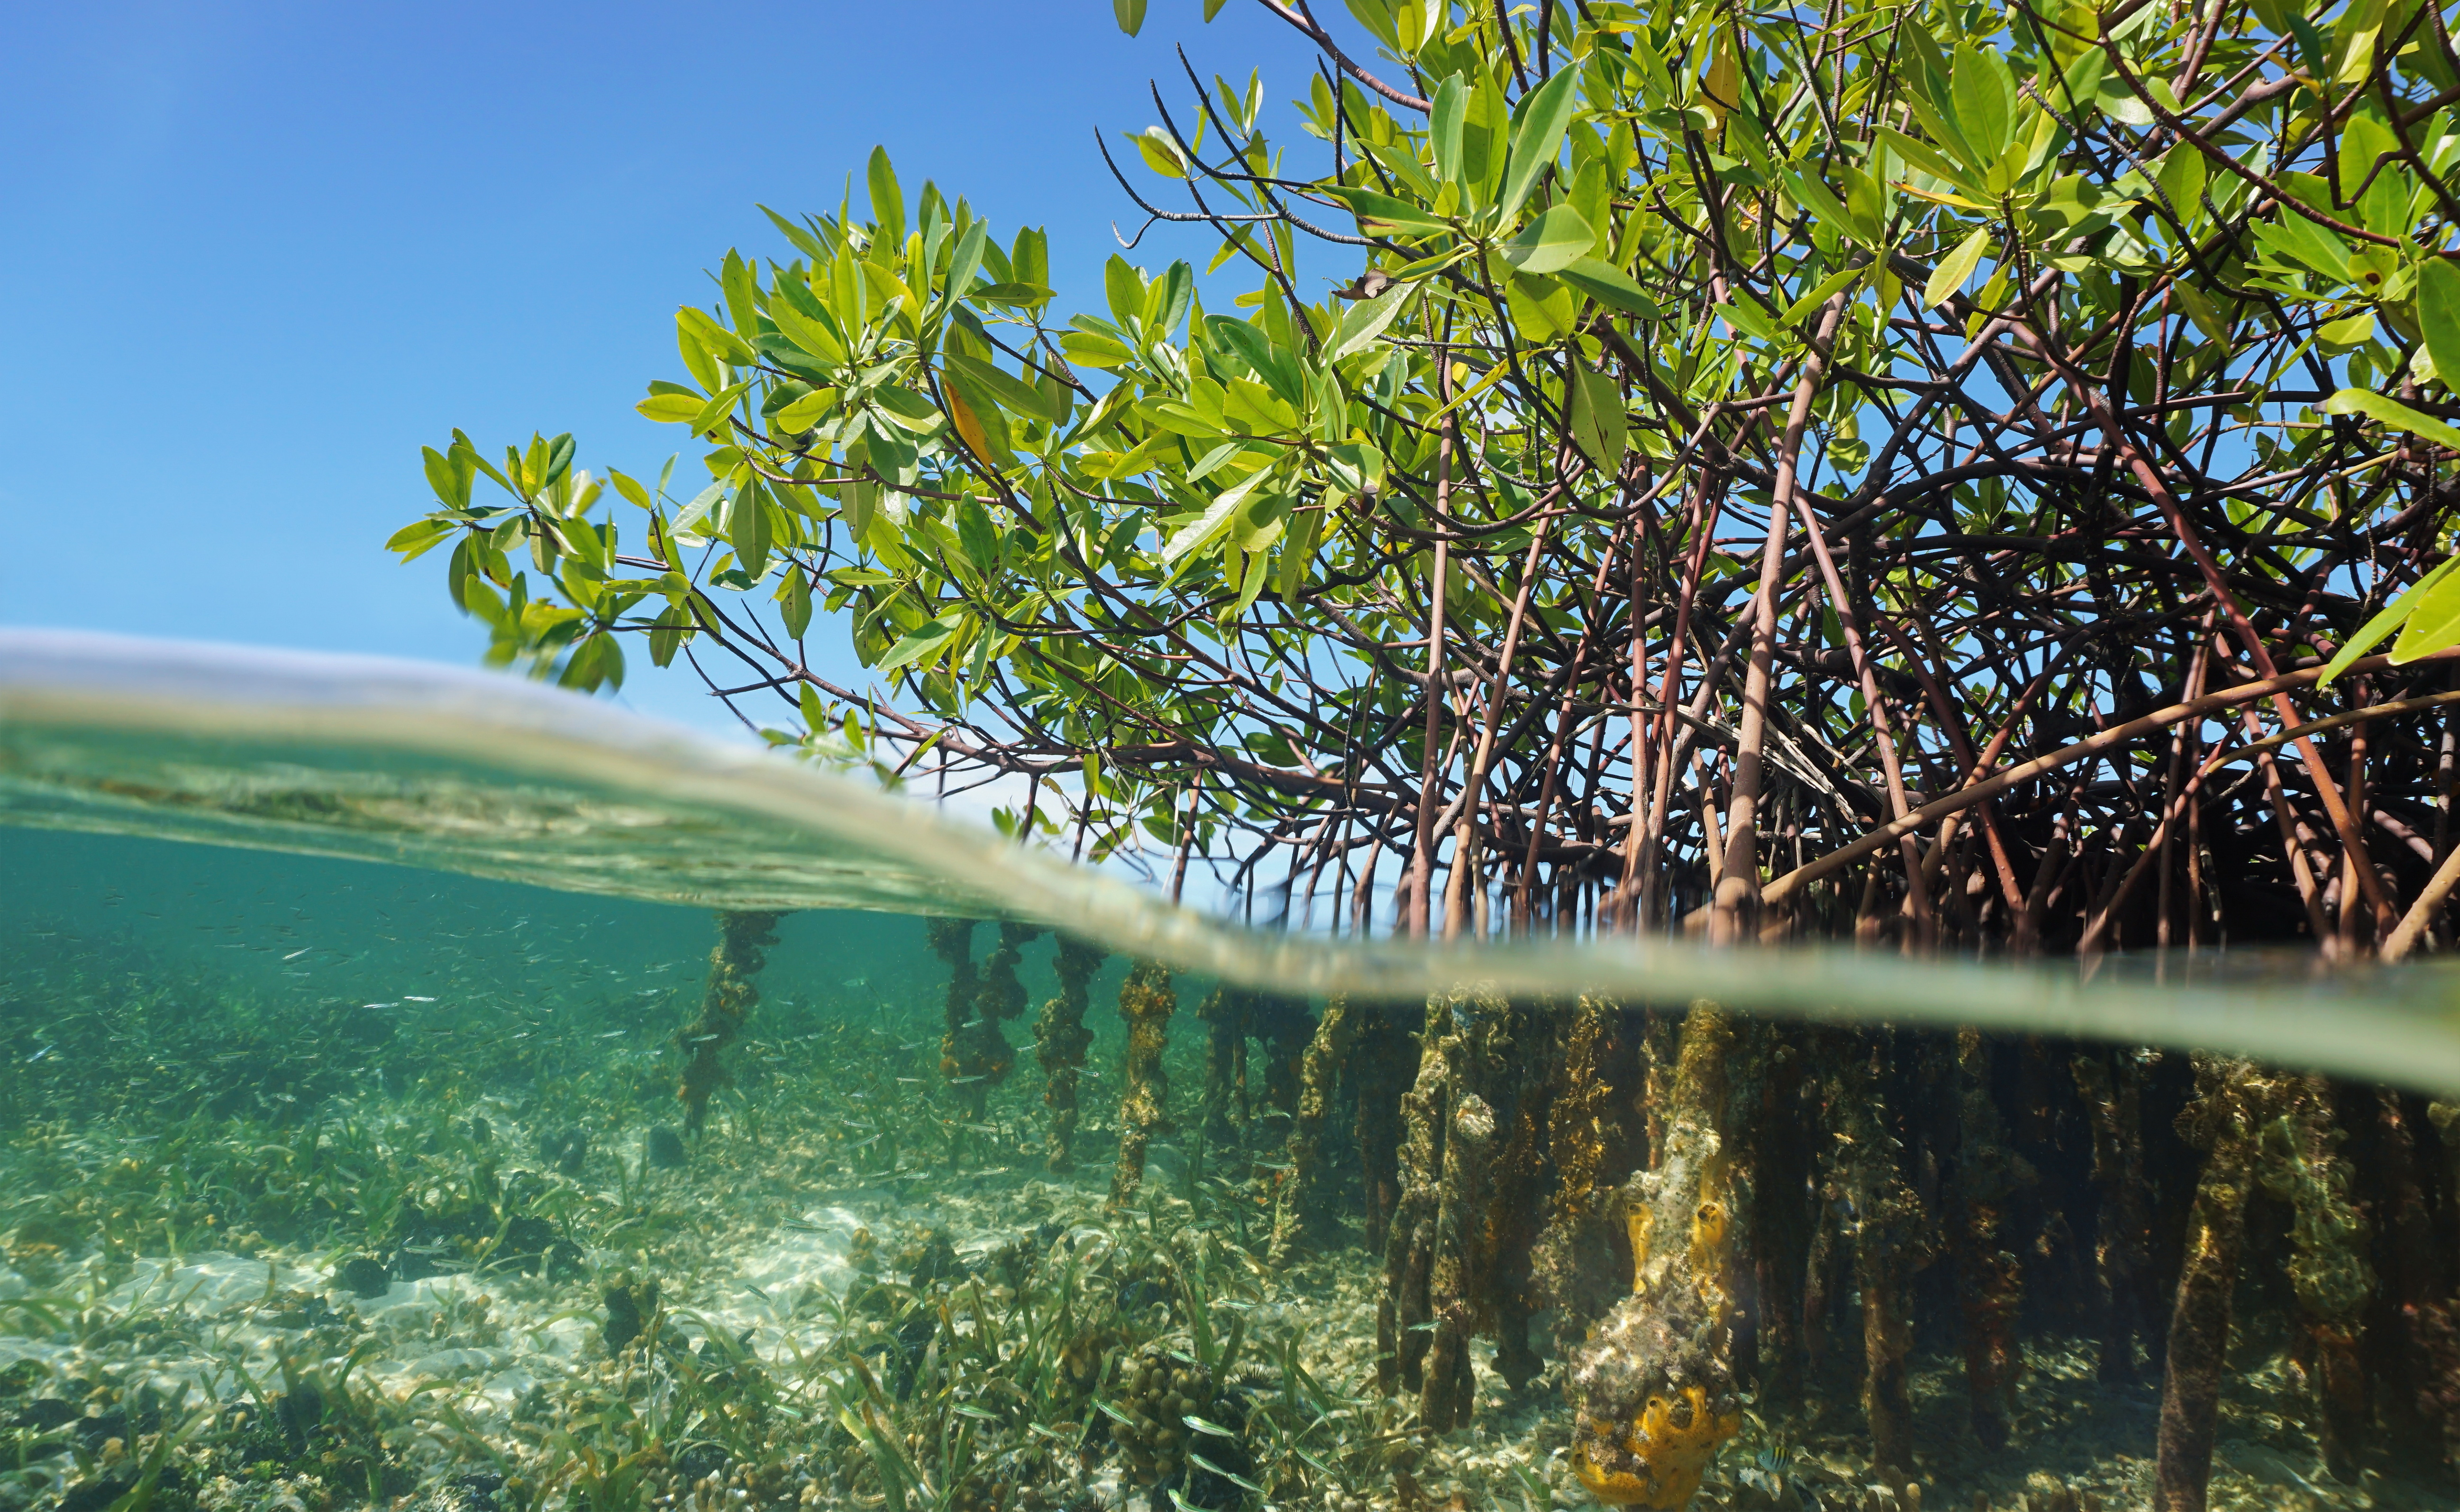 Mangrove trees diving in the Caribbean sea, Panama, Central America